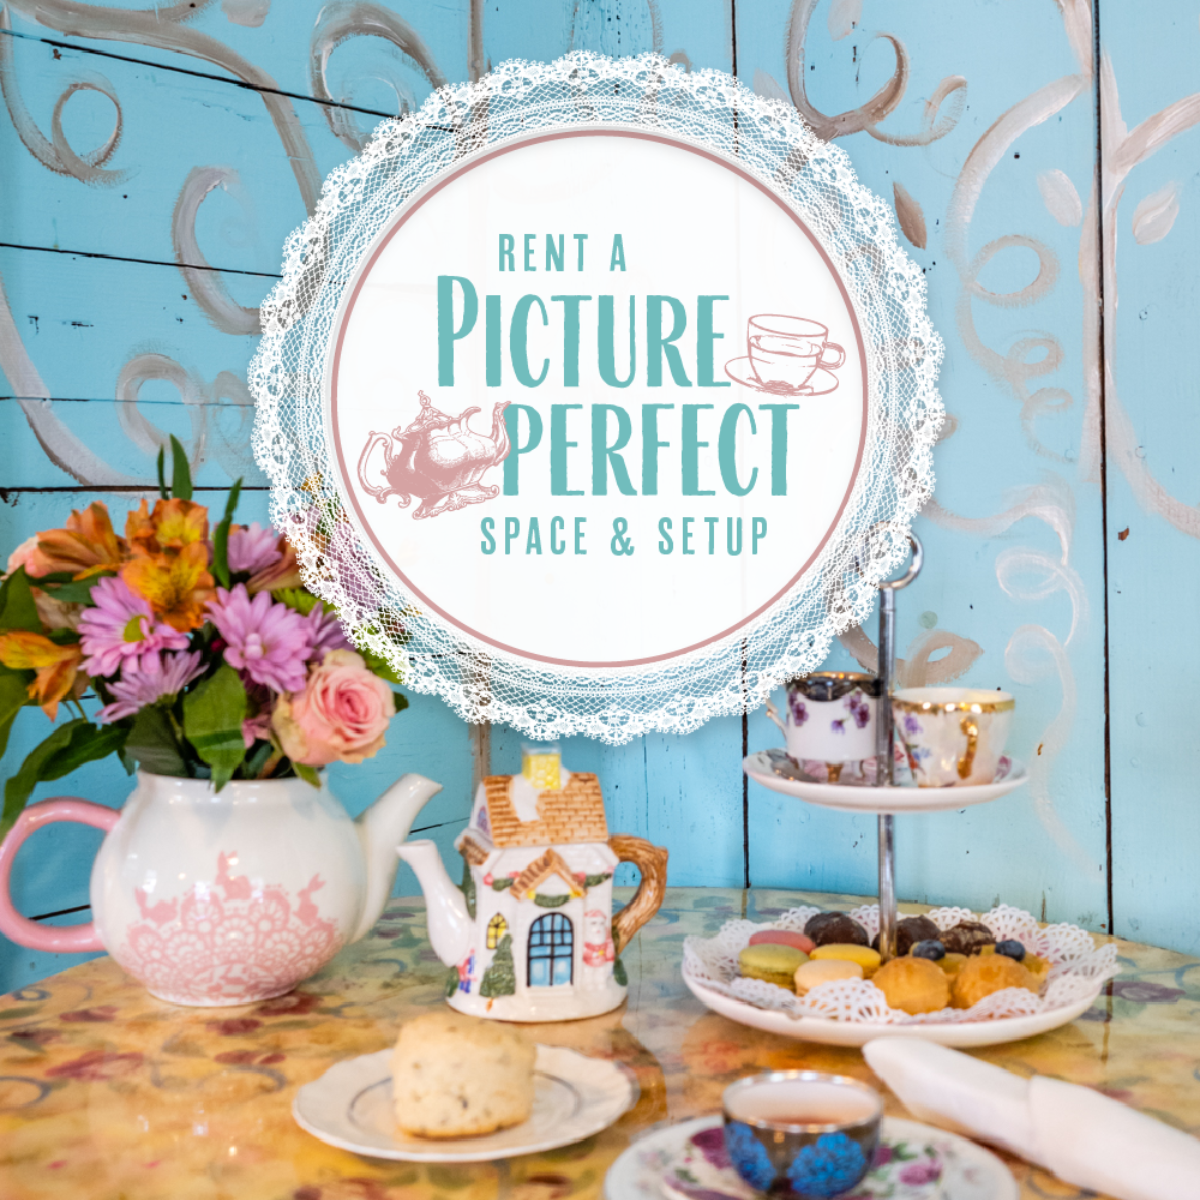 Sweeten your photos and contents with our place! You can now rent our lovely space for $50/HR, build up backdrops or set up a tea party scene, and have a vintage tea party photo shoot. Call (281) 528-6550 to book today. #morethanjusttea #teamoment #teatime #oldtownspringpic.twitter.com/9Bl6heQXGx